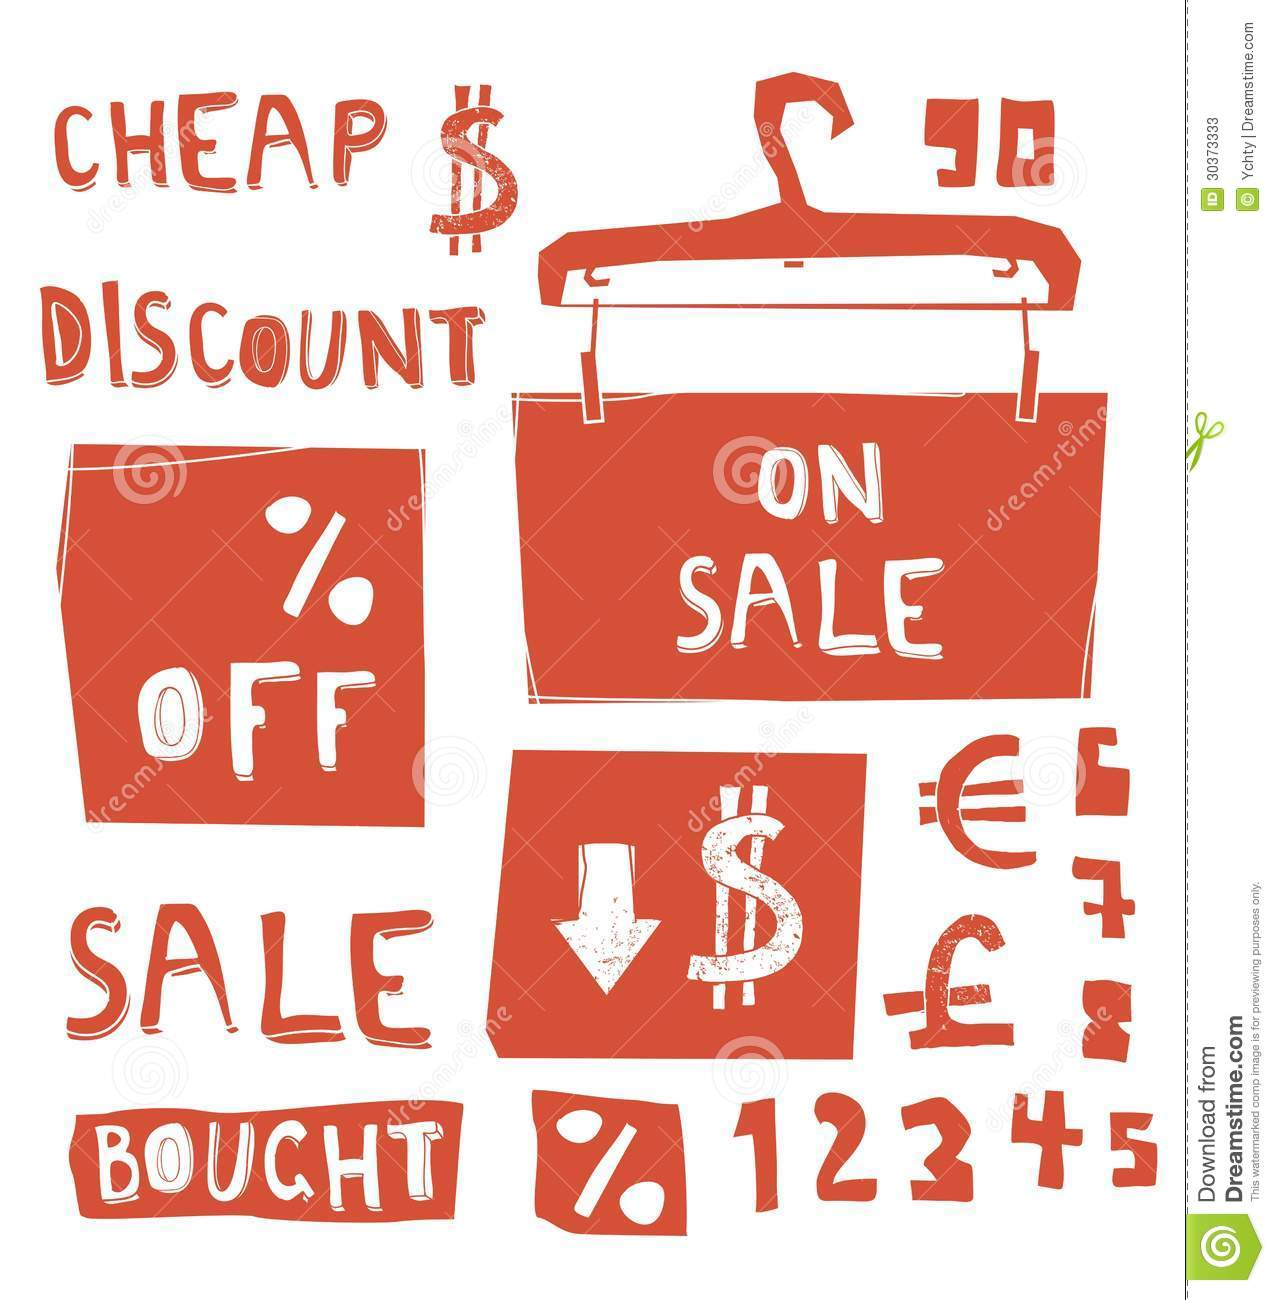 Discount Messages With Numbers And Currency Symbols Stock Vector